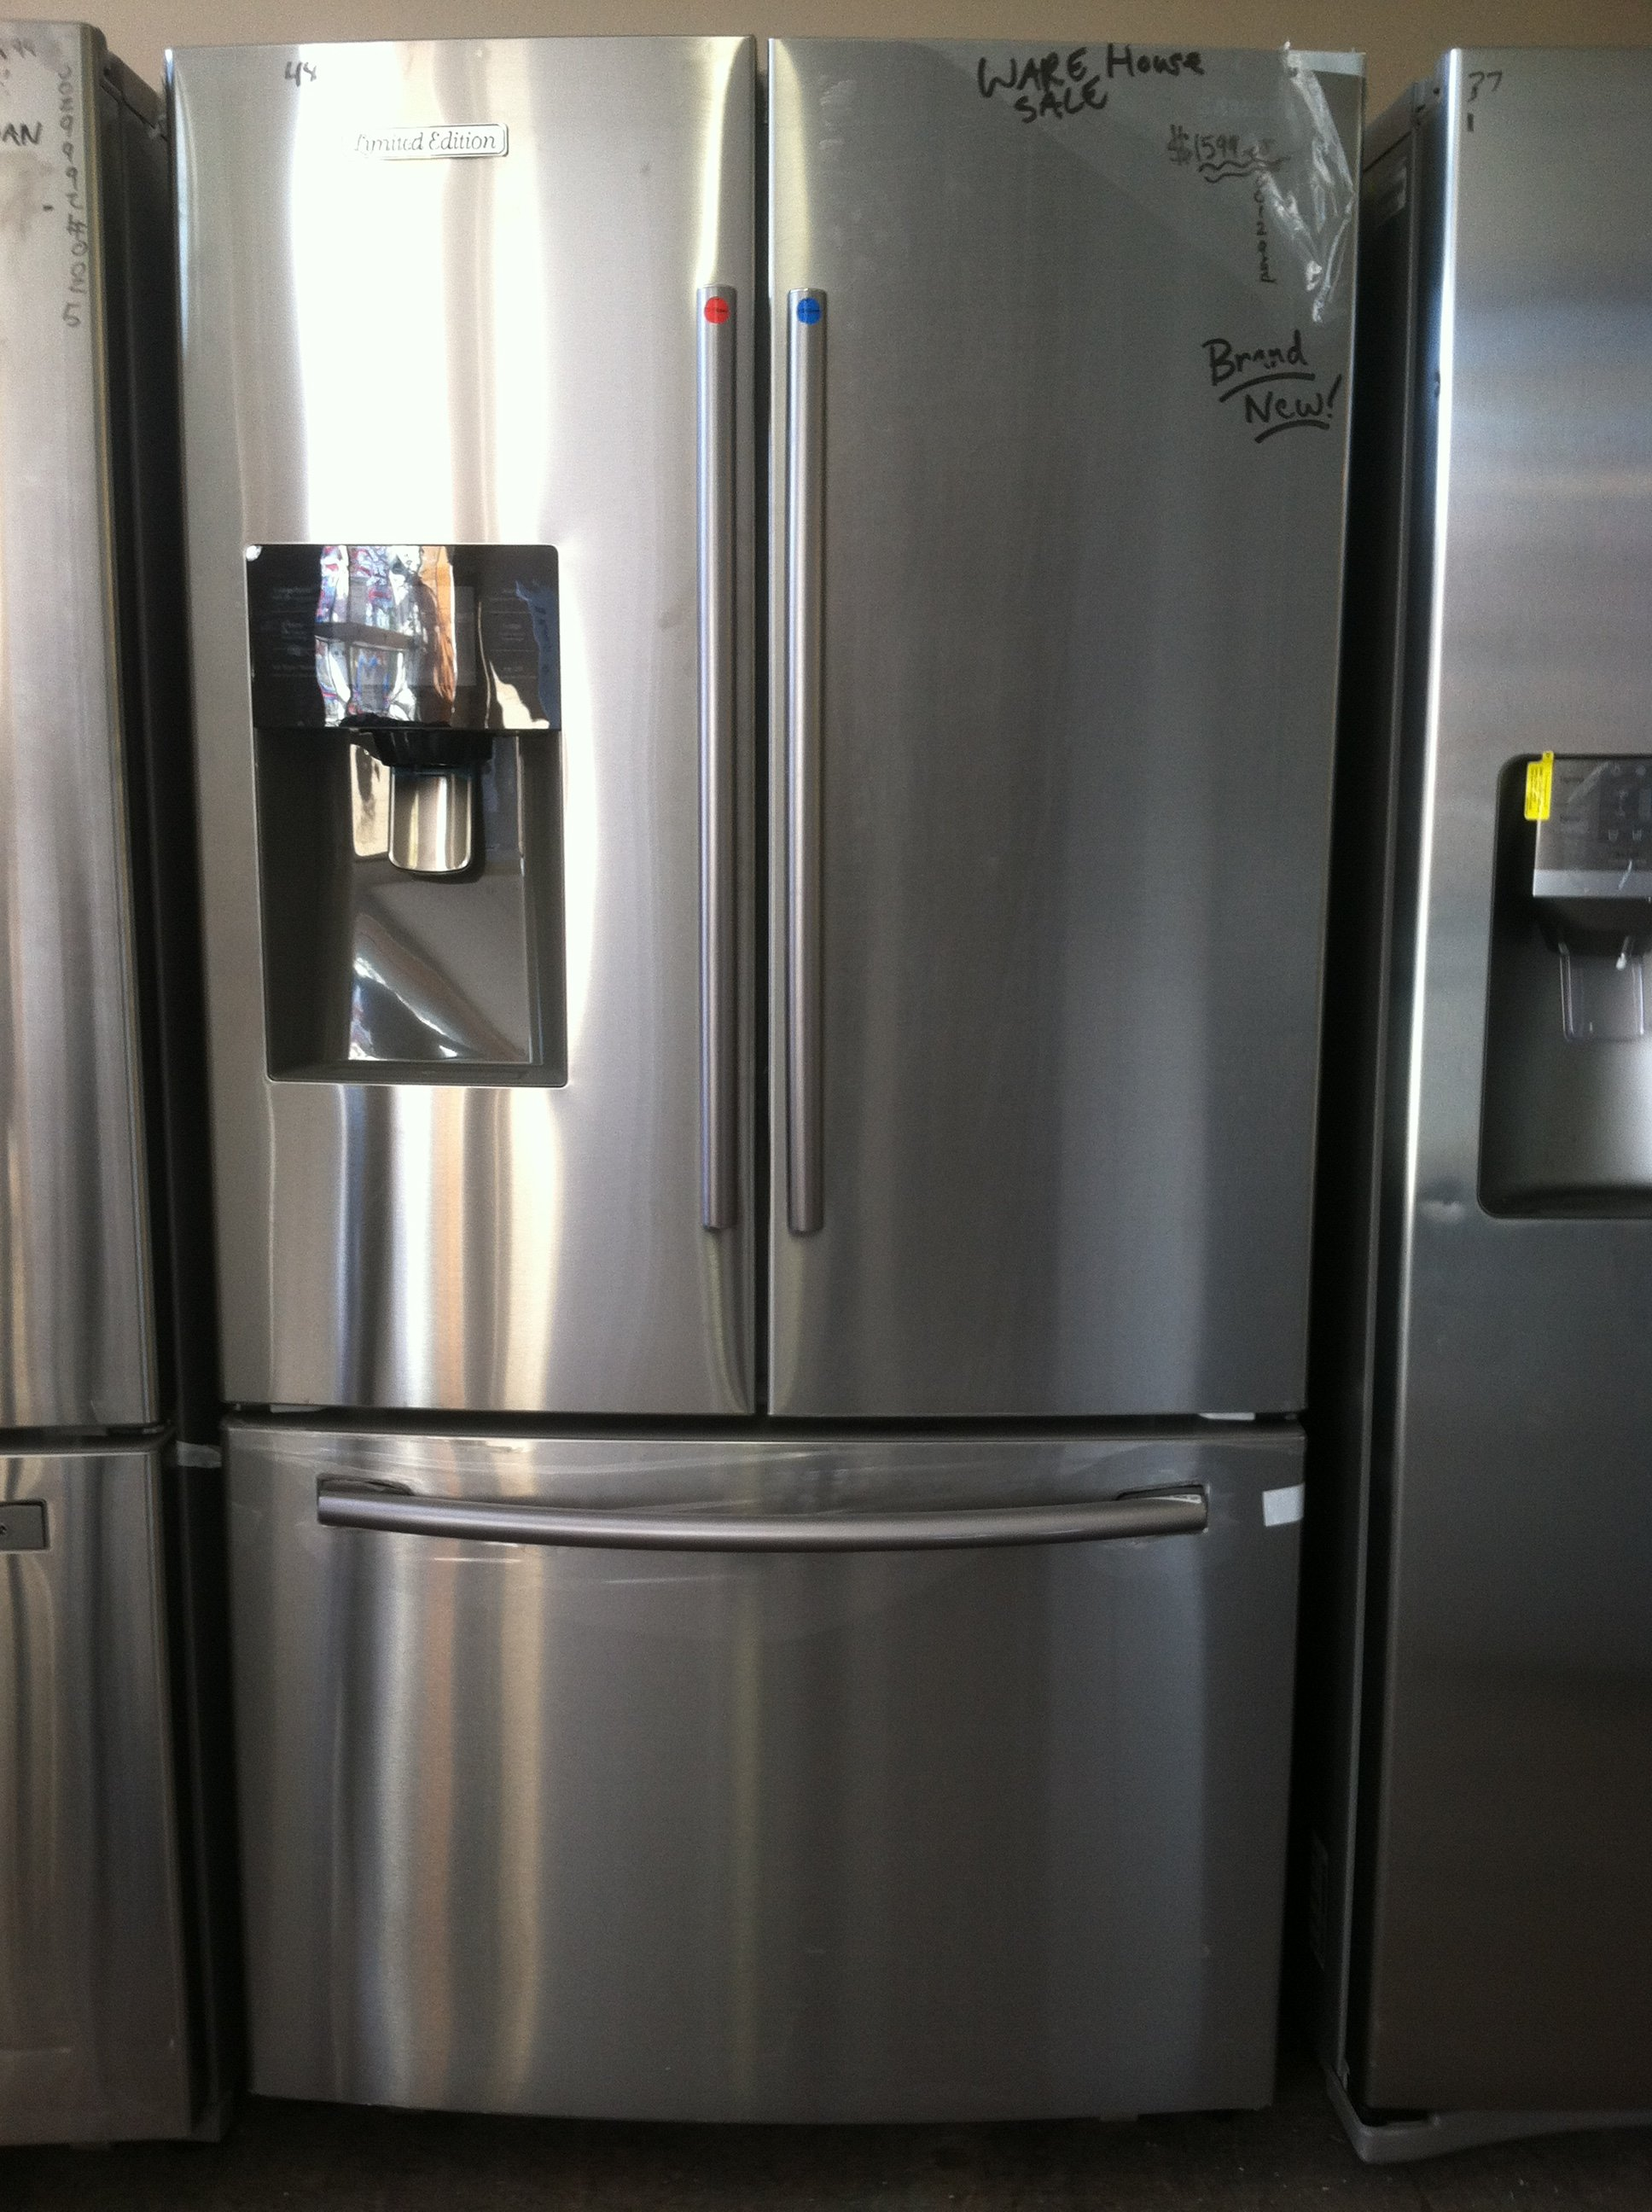 Discount Samsung Refrigerator St. Louis Appliance Outlet #746957